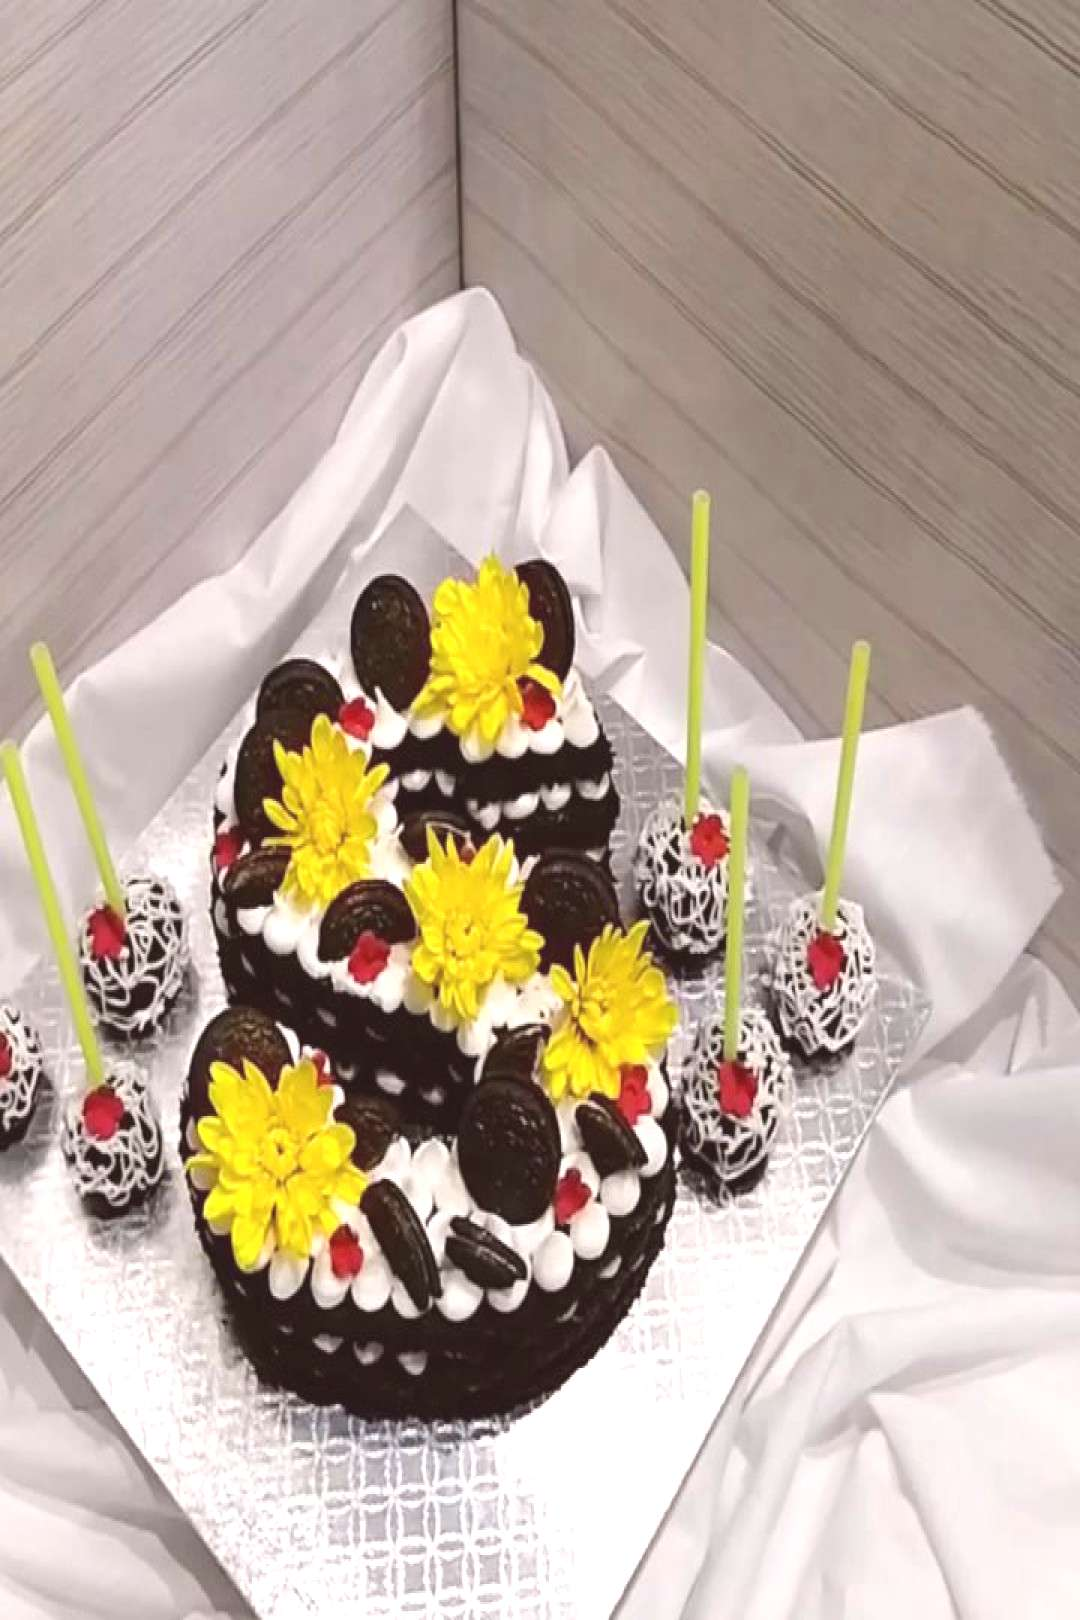 My birthday cake, new video is up on my channel. Enjoy watching a